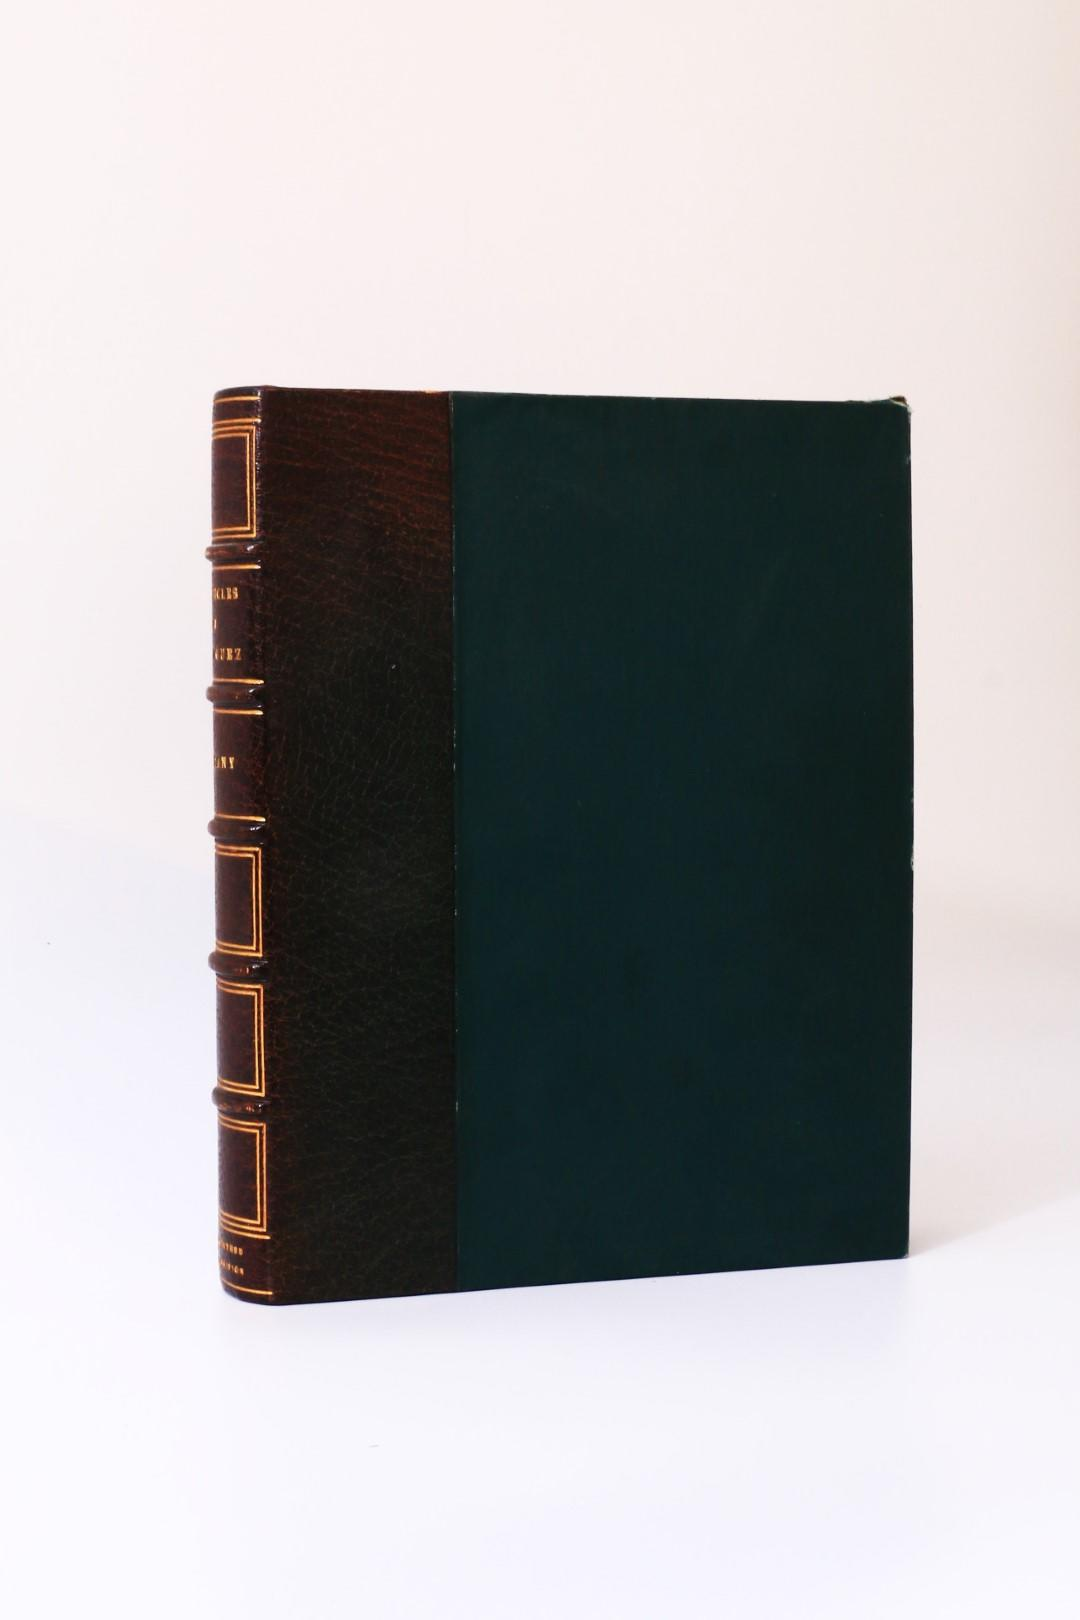 Lord Dunsany - The Chronicles of Rodriguez - G.P. Putnam's, 1922, Signed Limited Edition.